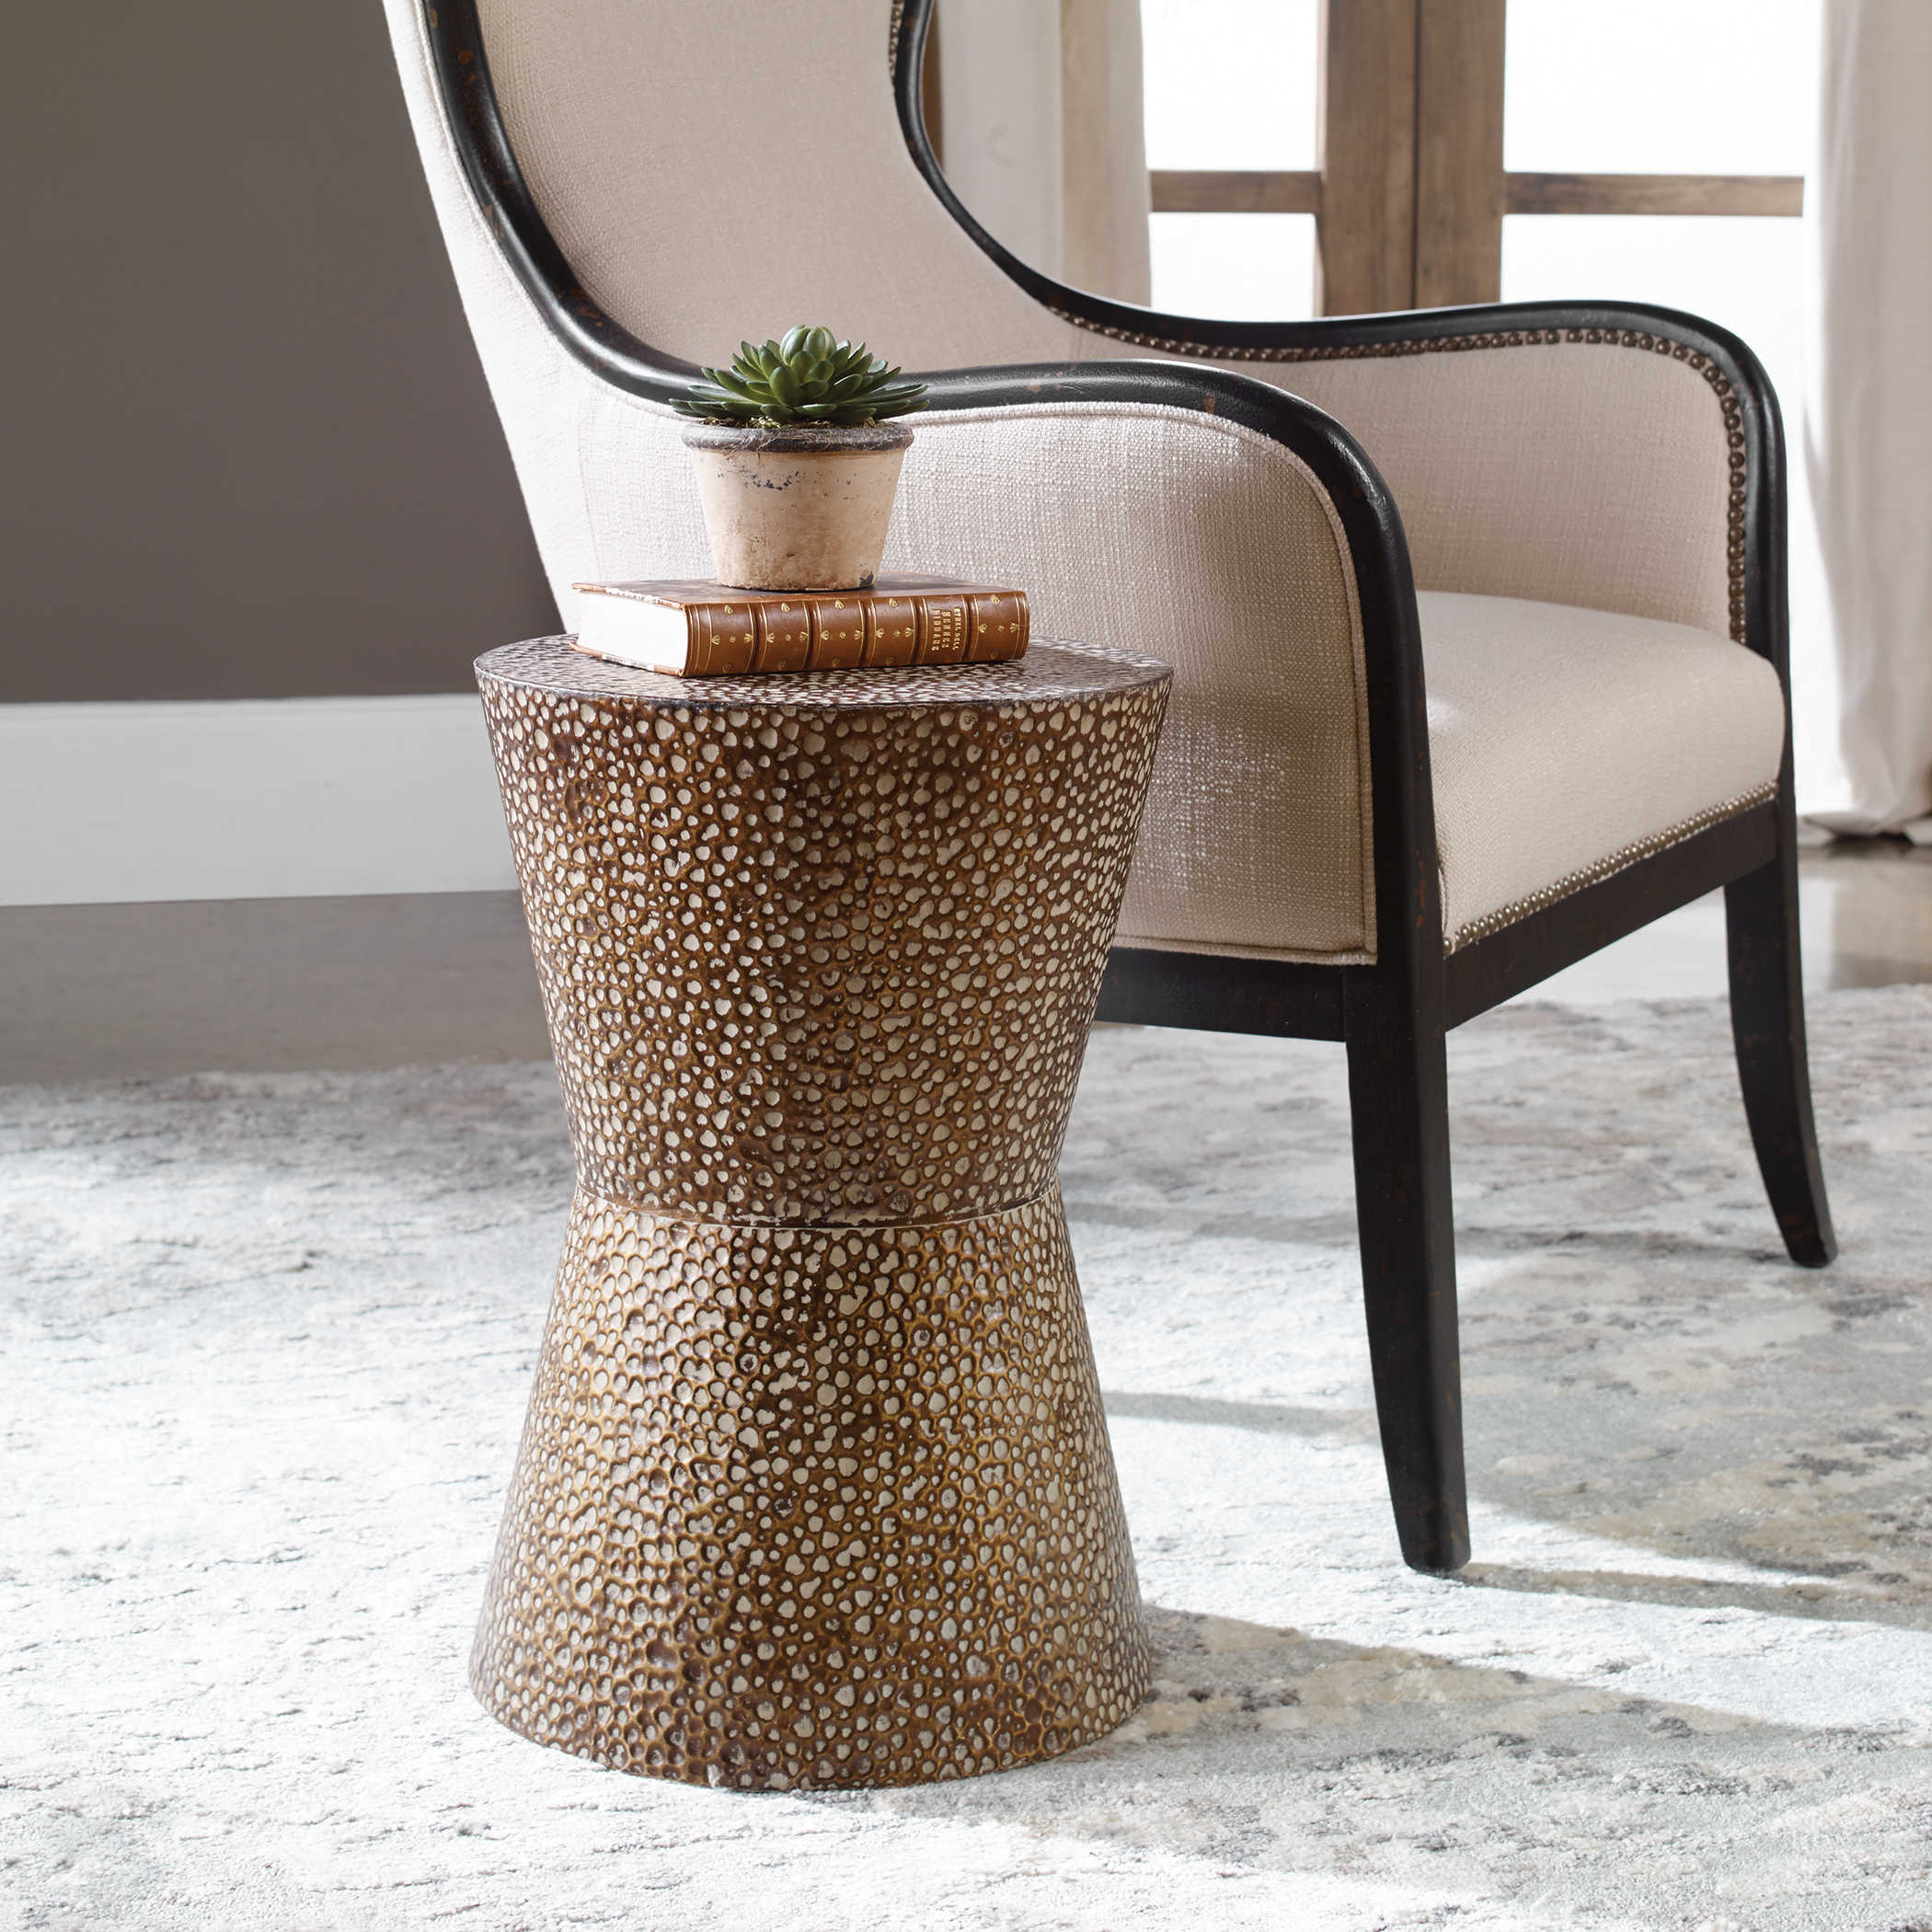 Drum Shaped Coffee Table.Uttermost Cutler Drum Shaped Accent Table